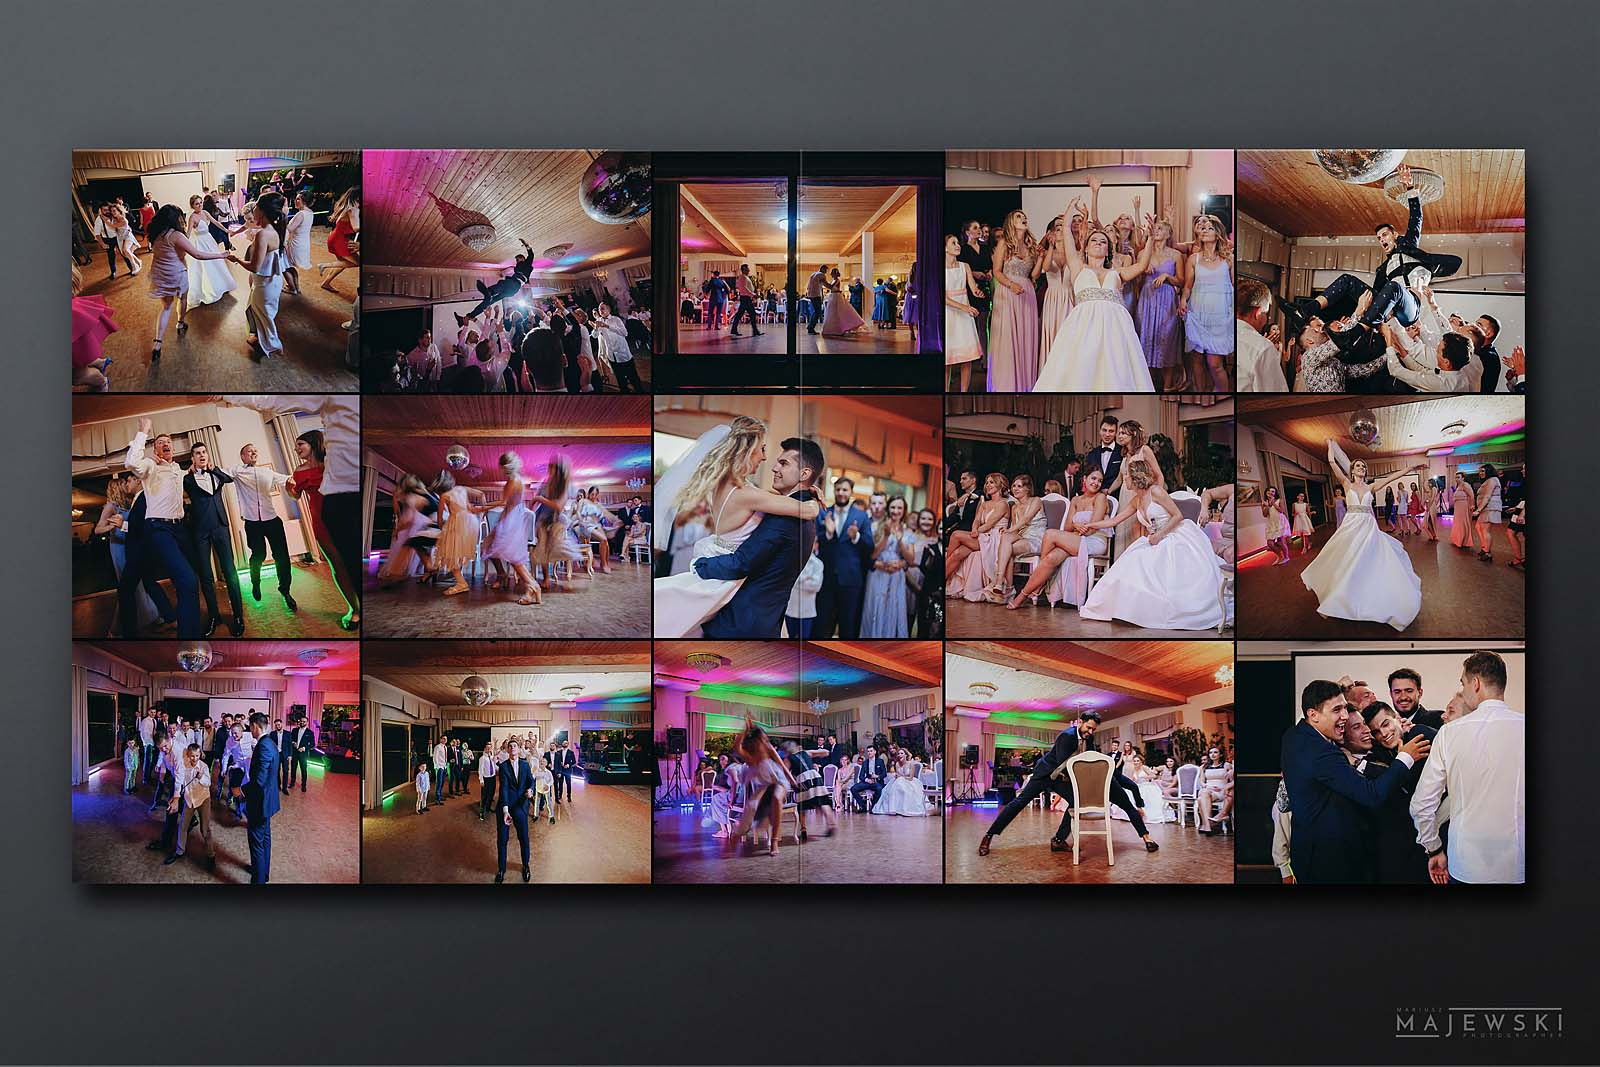 wedding-photo-album-mariusz-majewski-16071337